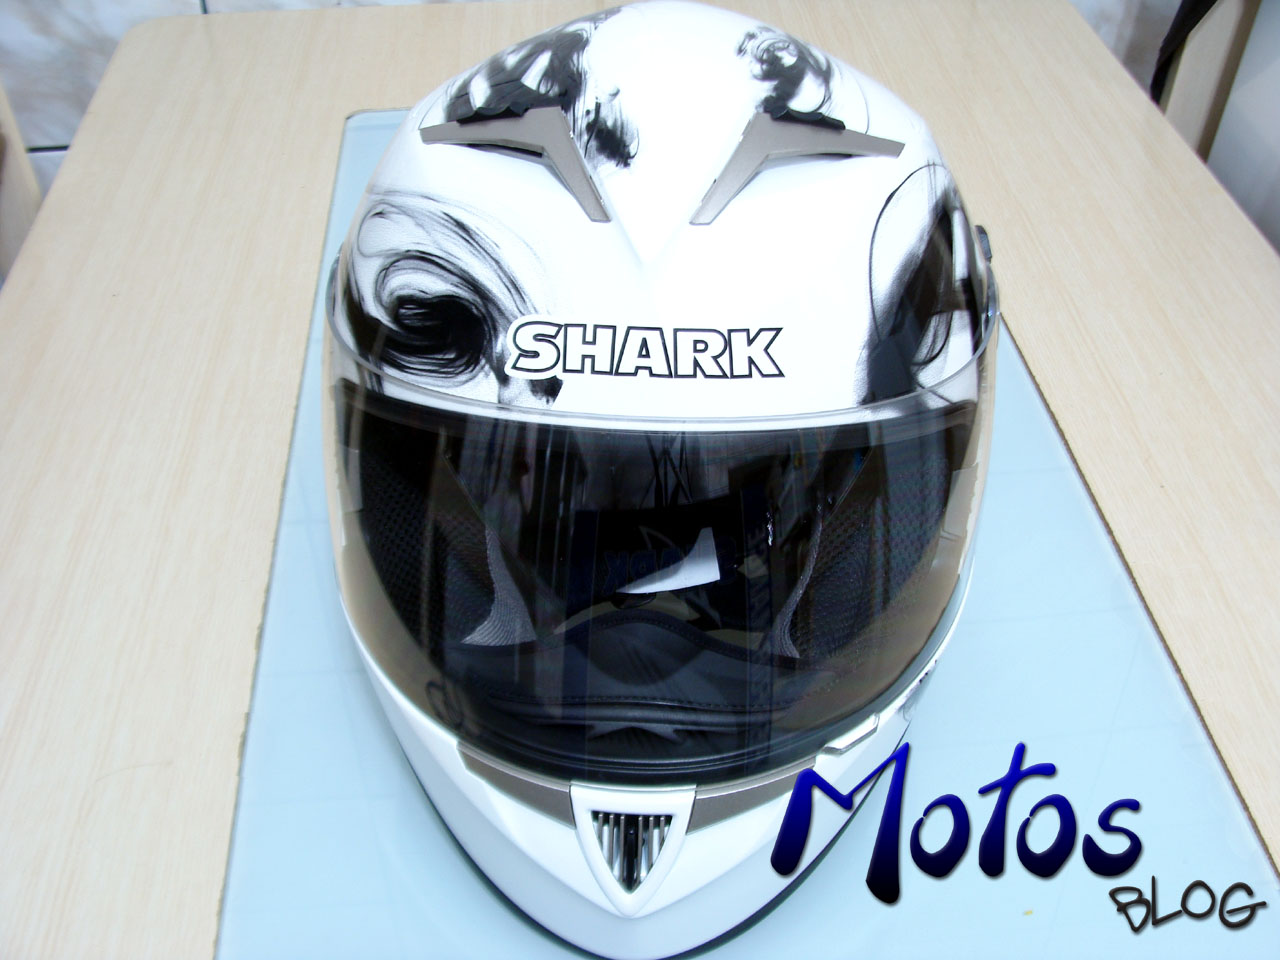 Entradas de ar do Shark S900